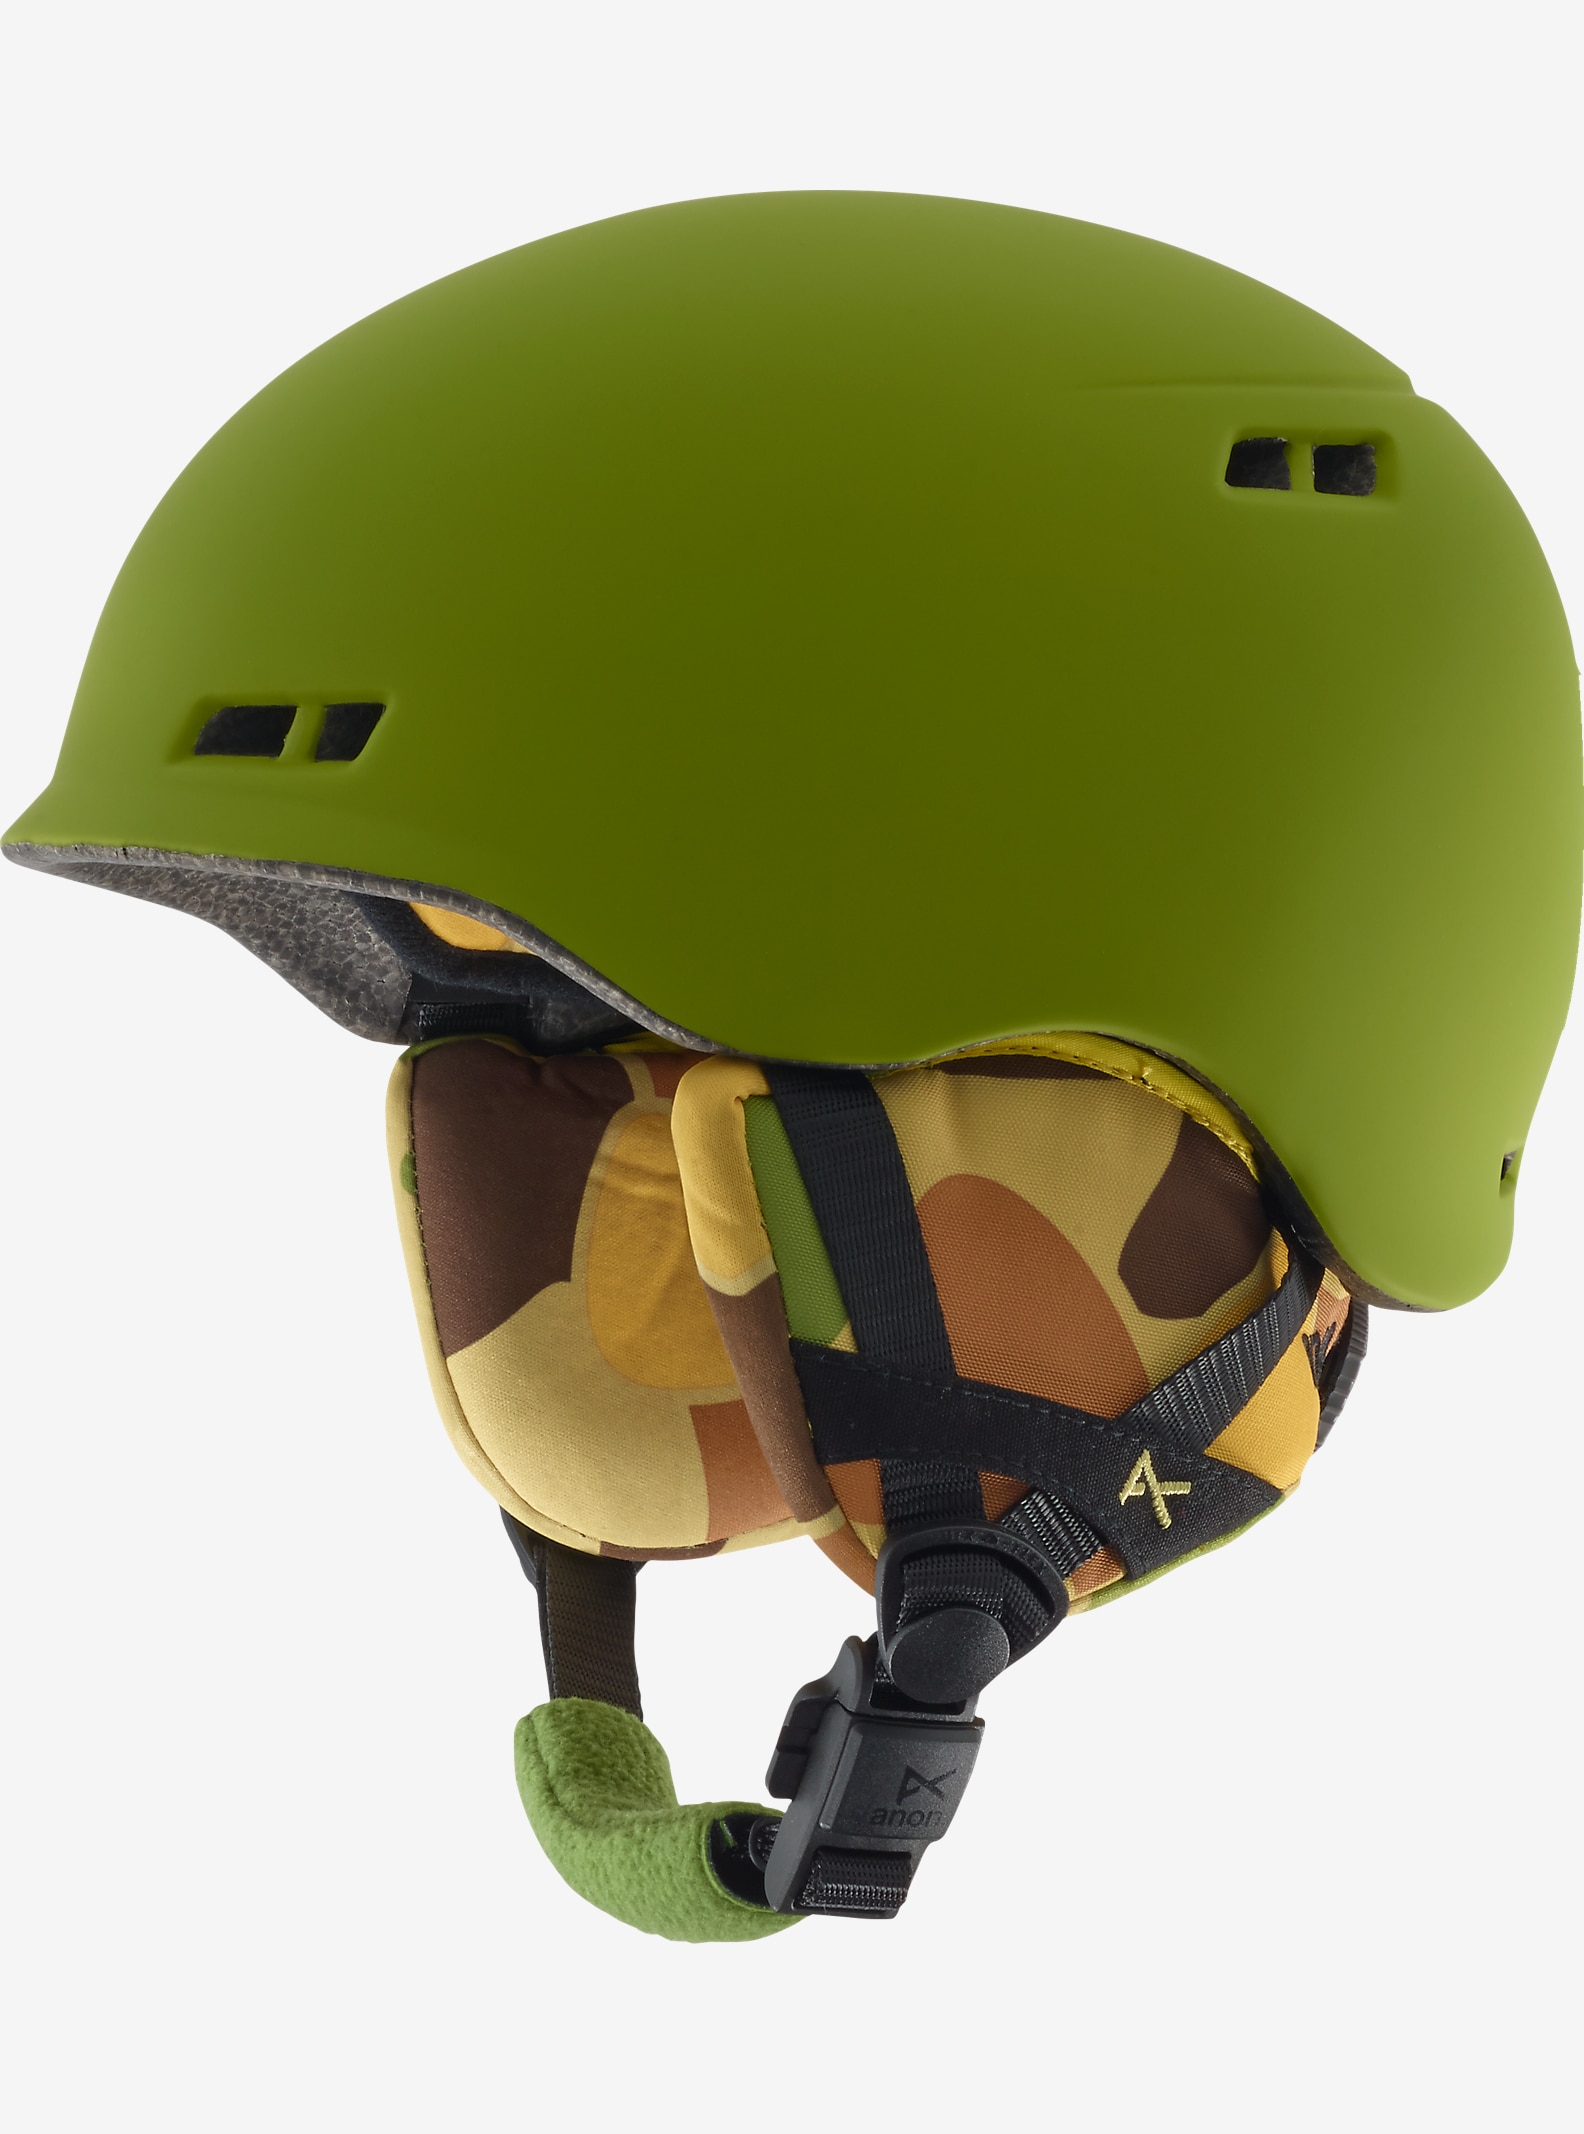 anon. Boys' Burner Helmet shown in Kamo Green